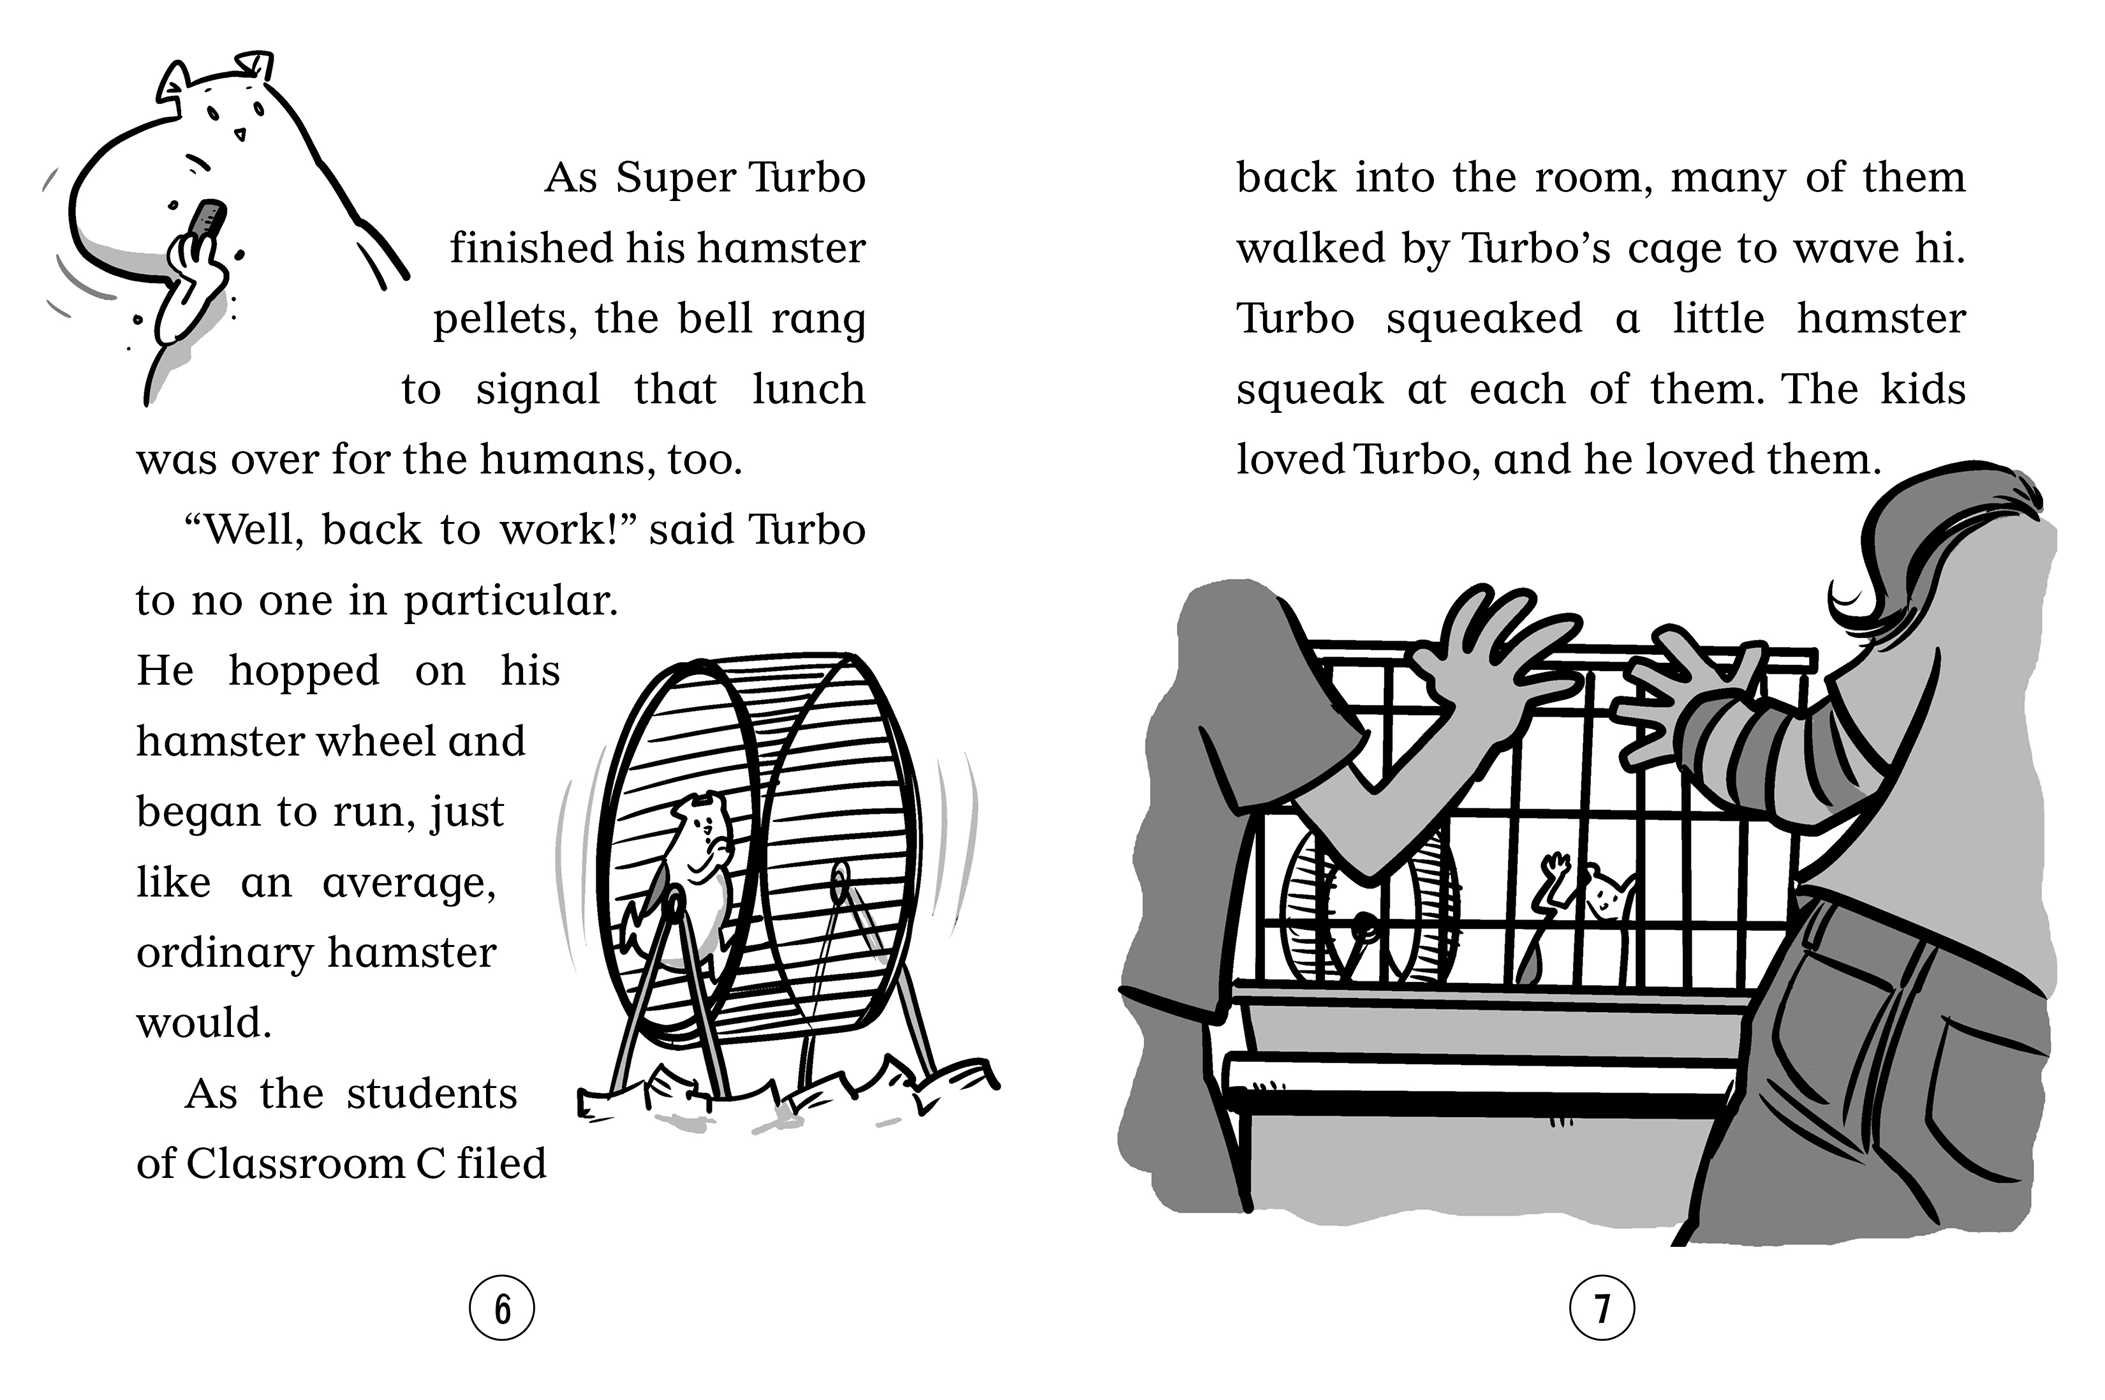 Amazon.com: Super Turbo Meets the Cat-Nappers (9781534411845): Lee Kirby, George OConnor: Books